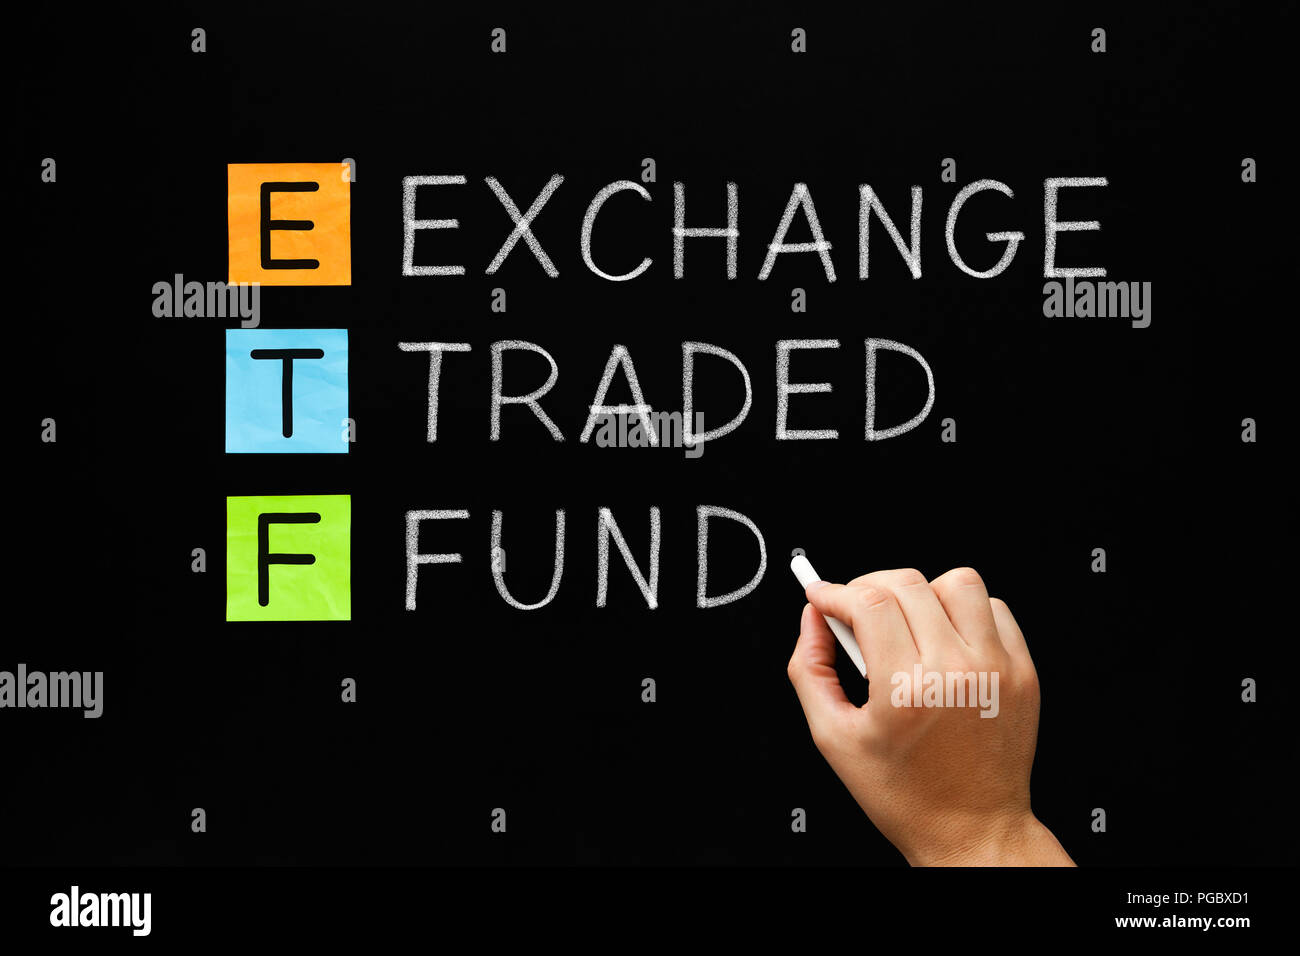 Hand writing ETF - Exchange Traded Fund with white chalk on blackboard. Stock Photo